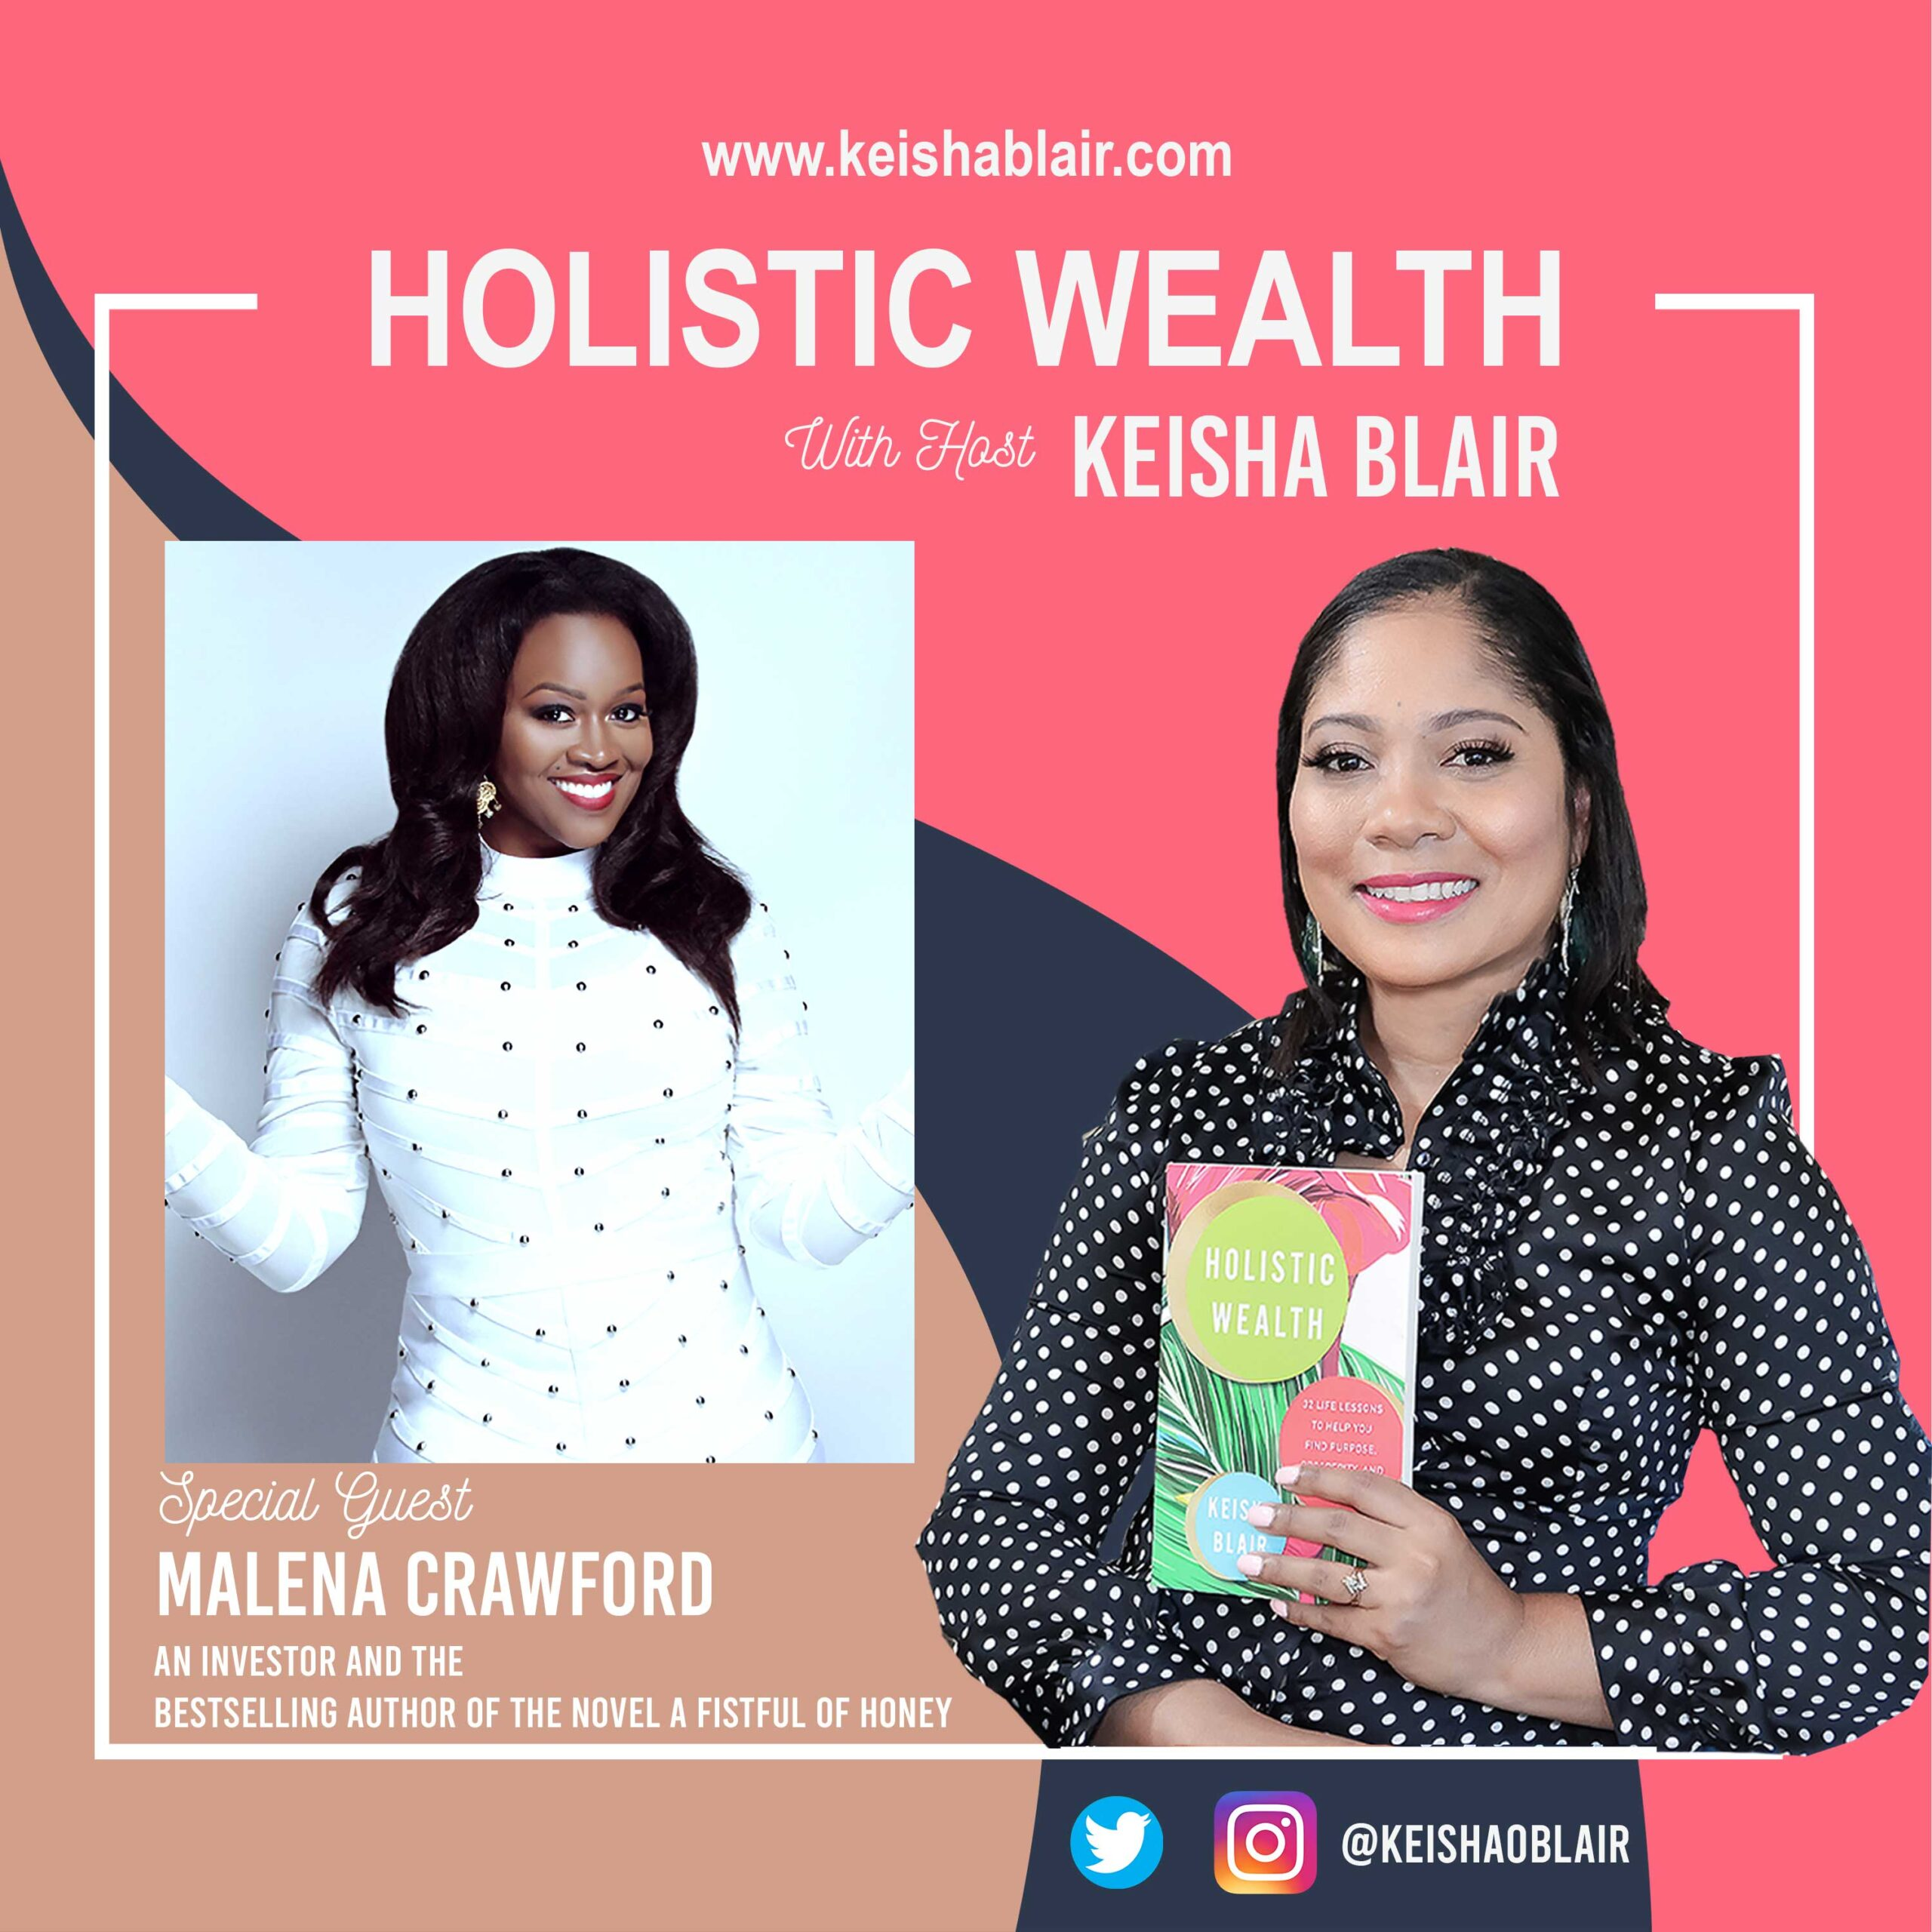 Holistic Wealth: How To Invest in Real Estate With Little or No Money